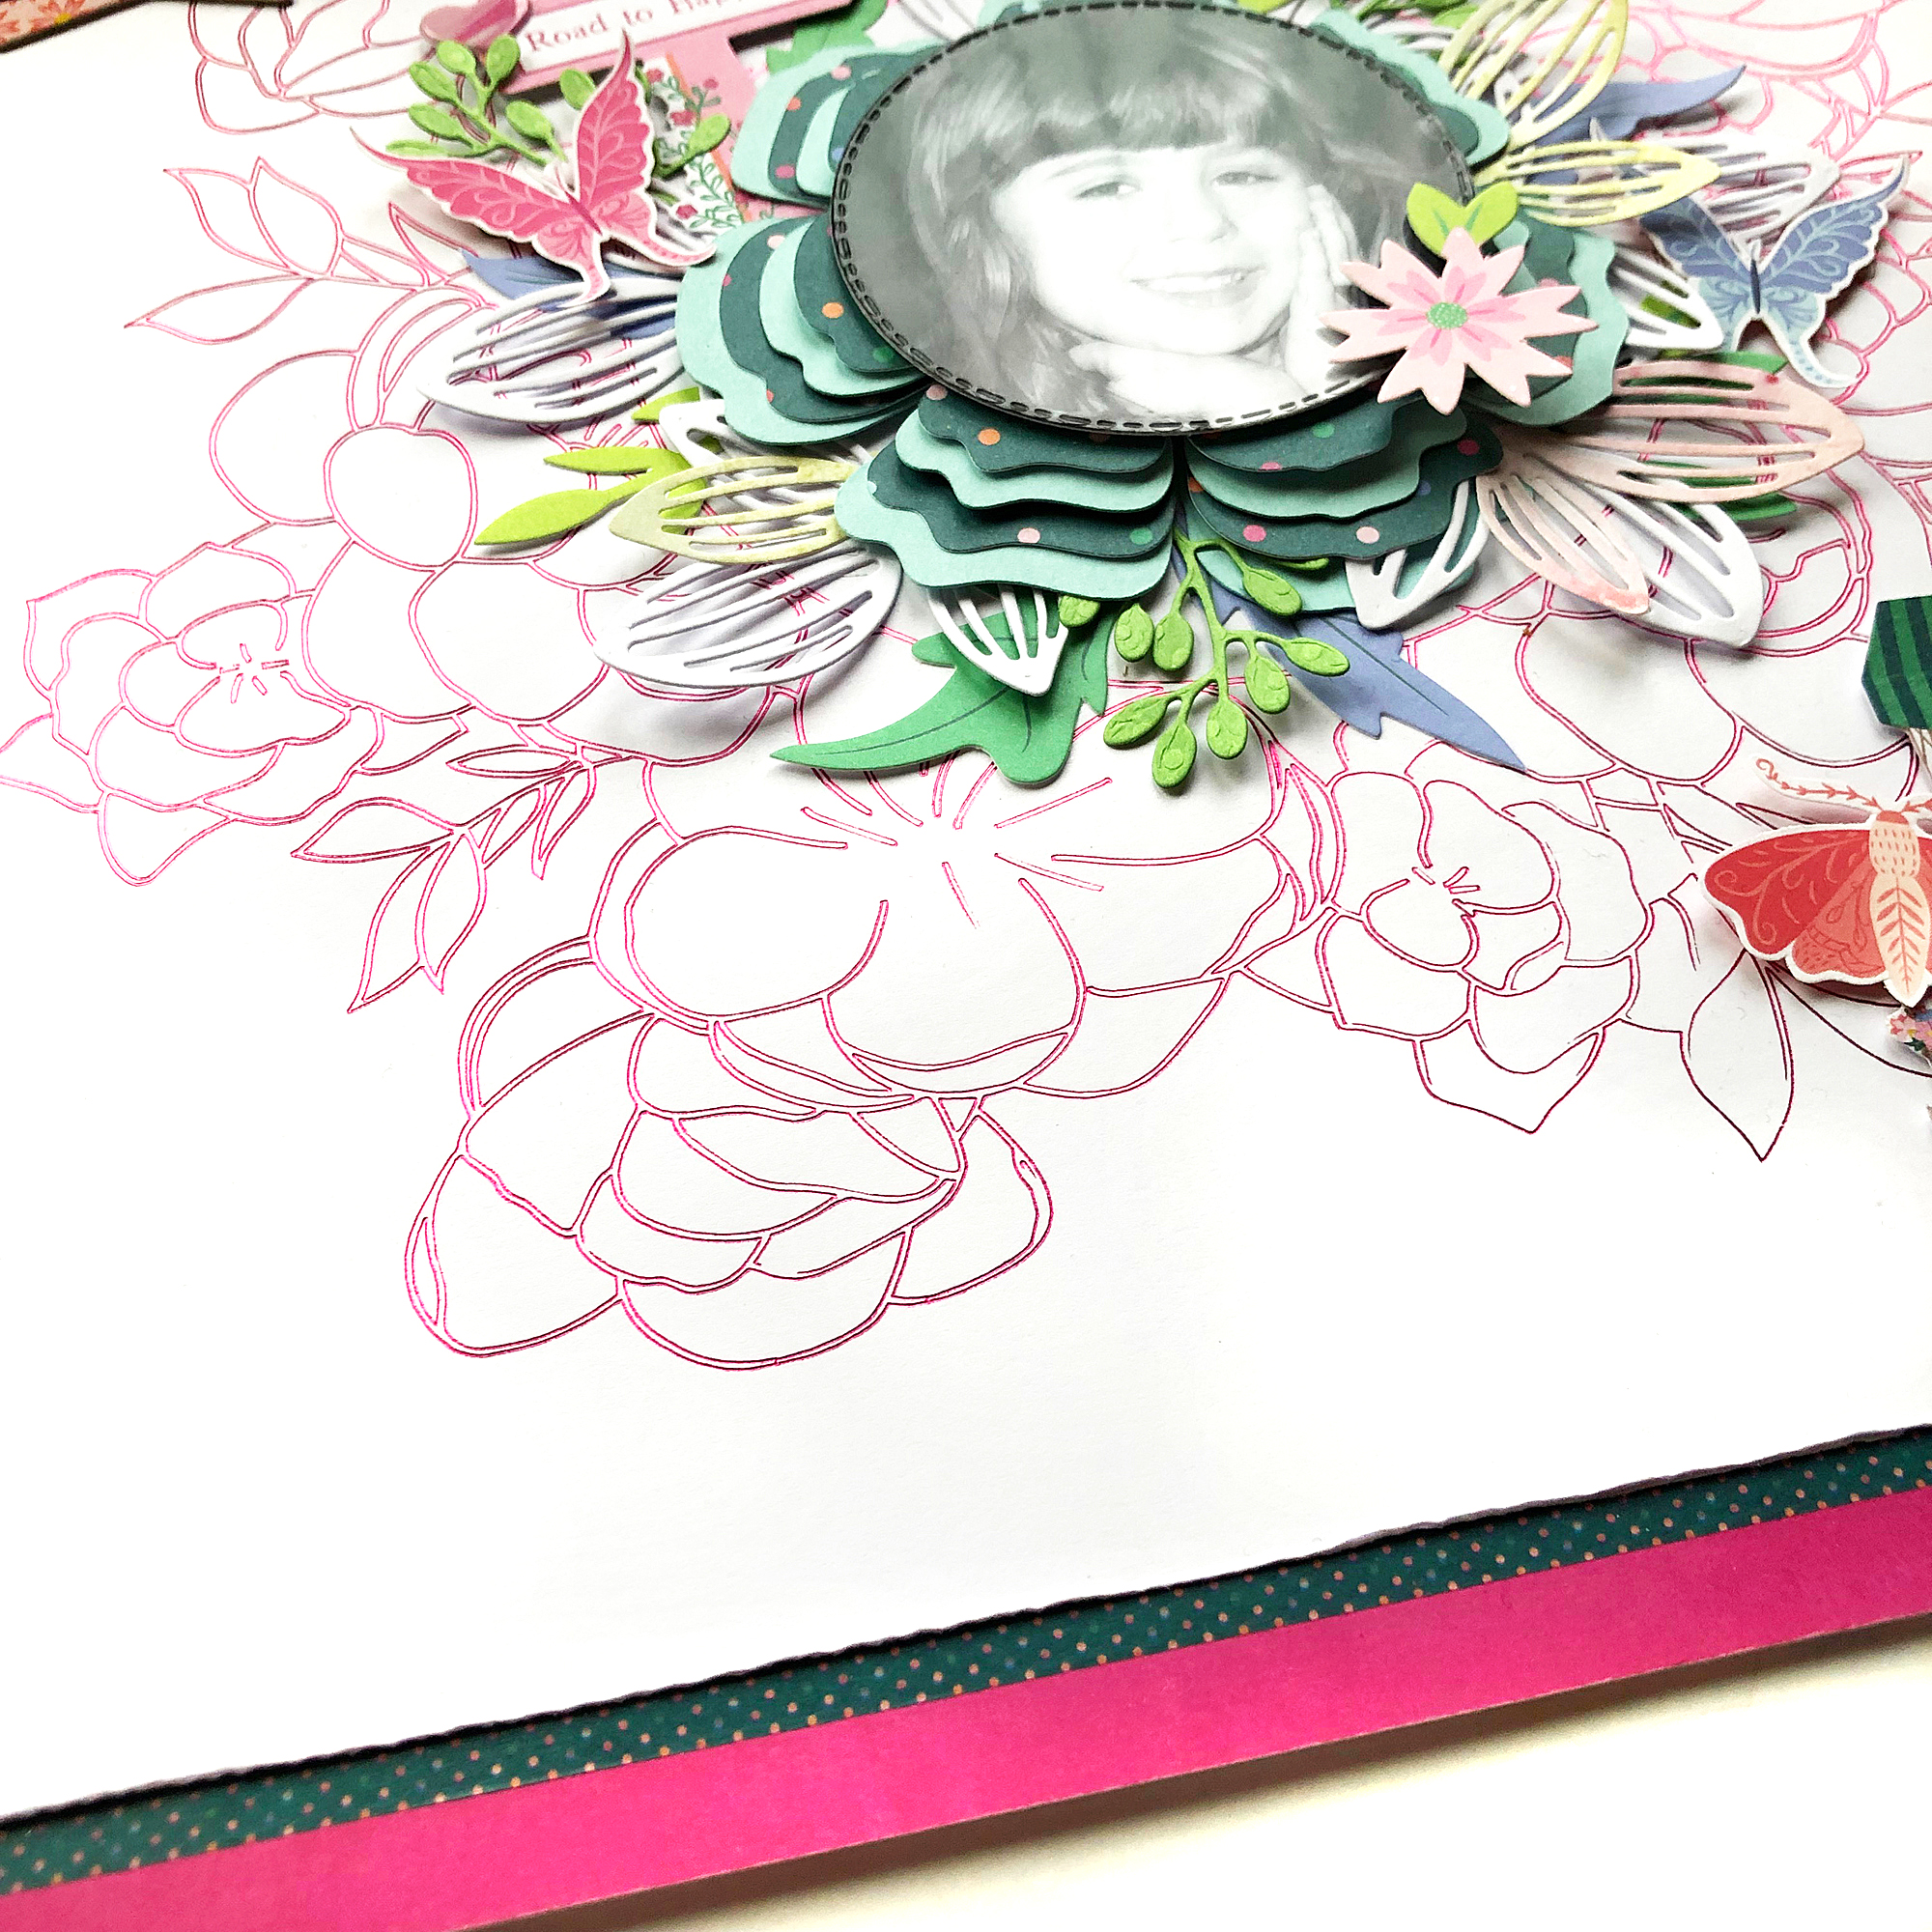 Scrapbook Page with the Foil Quill by Enza Gudor for We R Memory Keepers